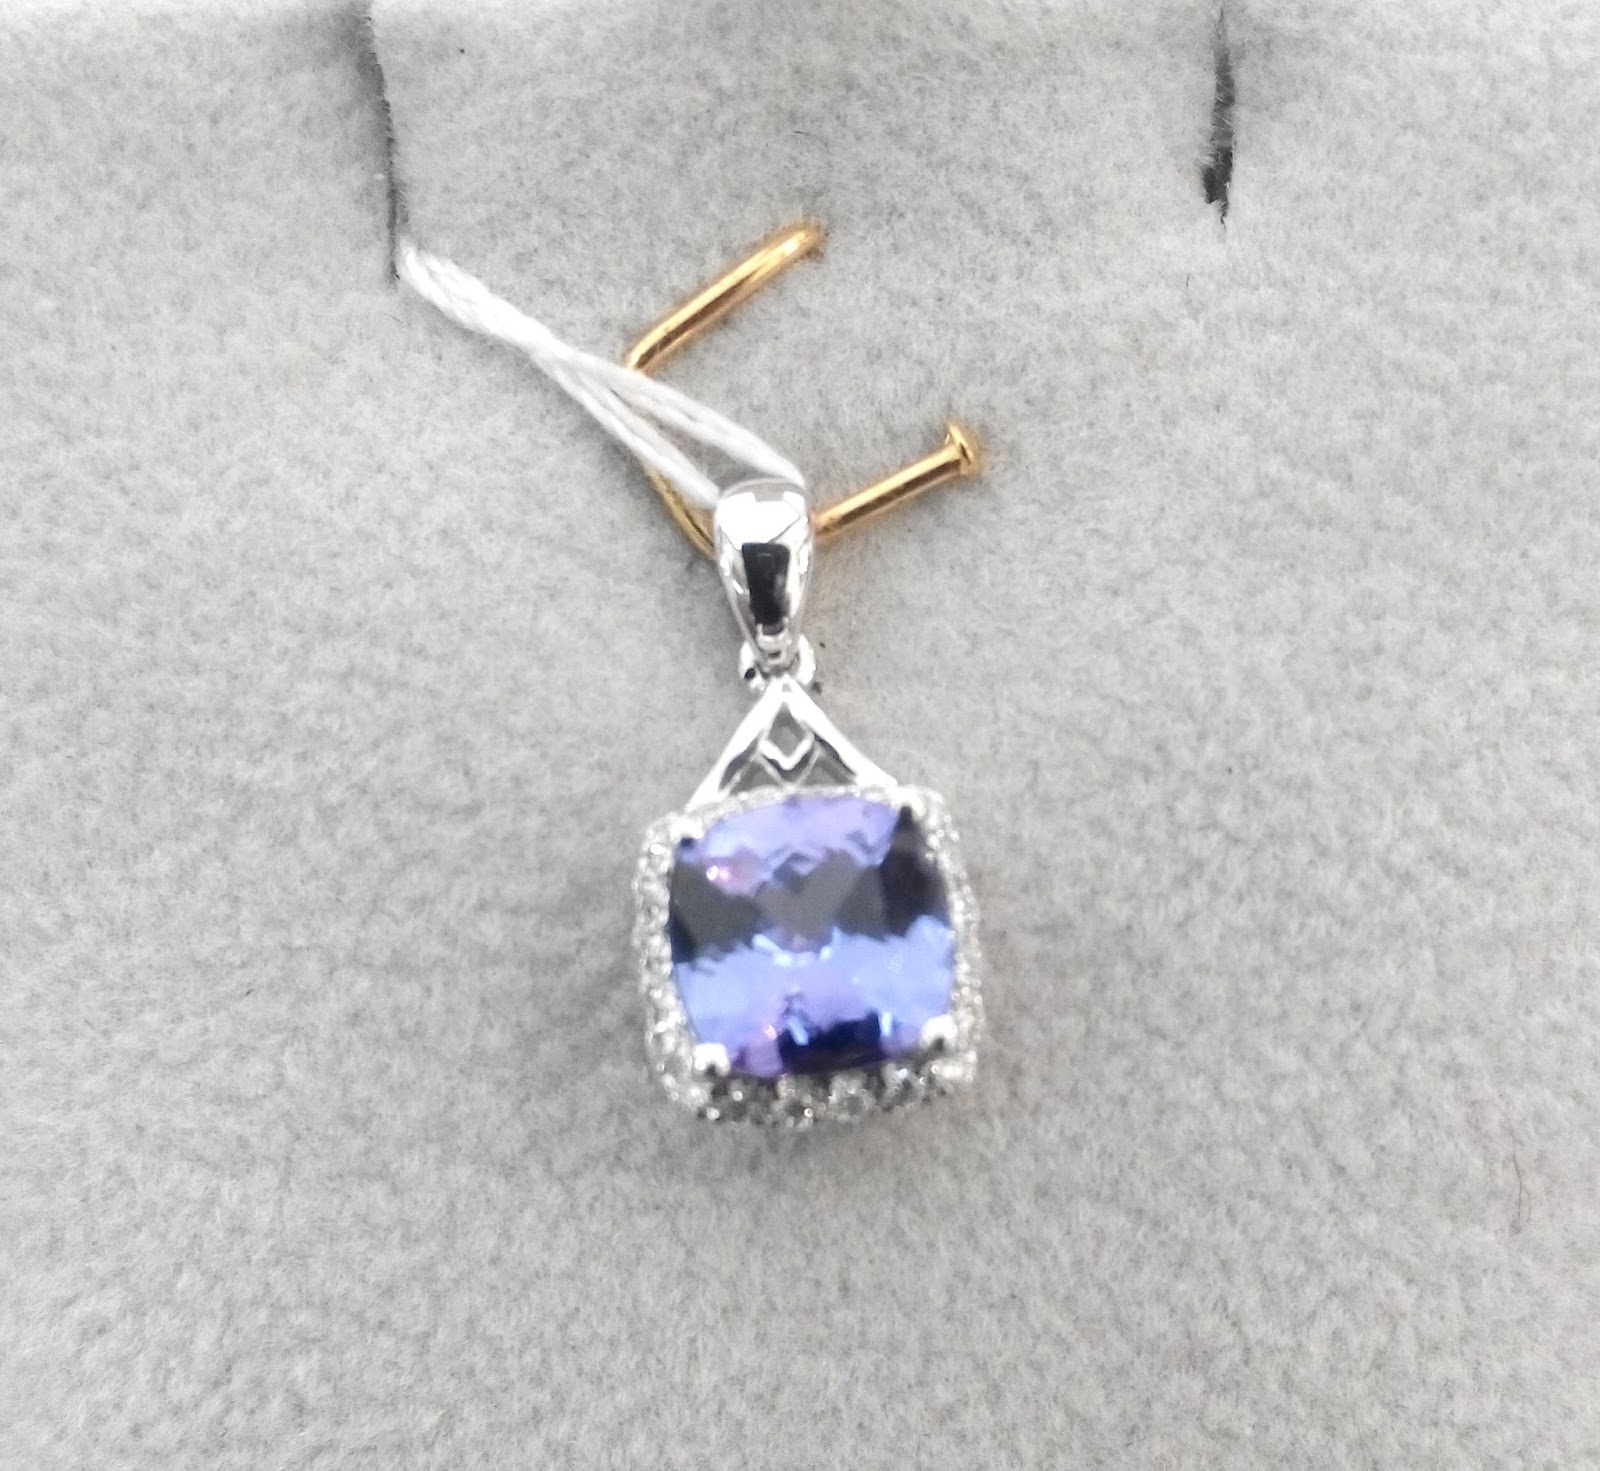 tanzanite d for grade rare cts jewelry triangle more and natura block my natural pendant cut necklace affair loose bridal cornflower investment products ring blue certified trillion aaa engagement